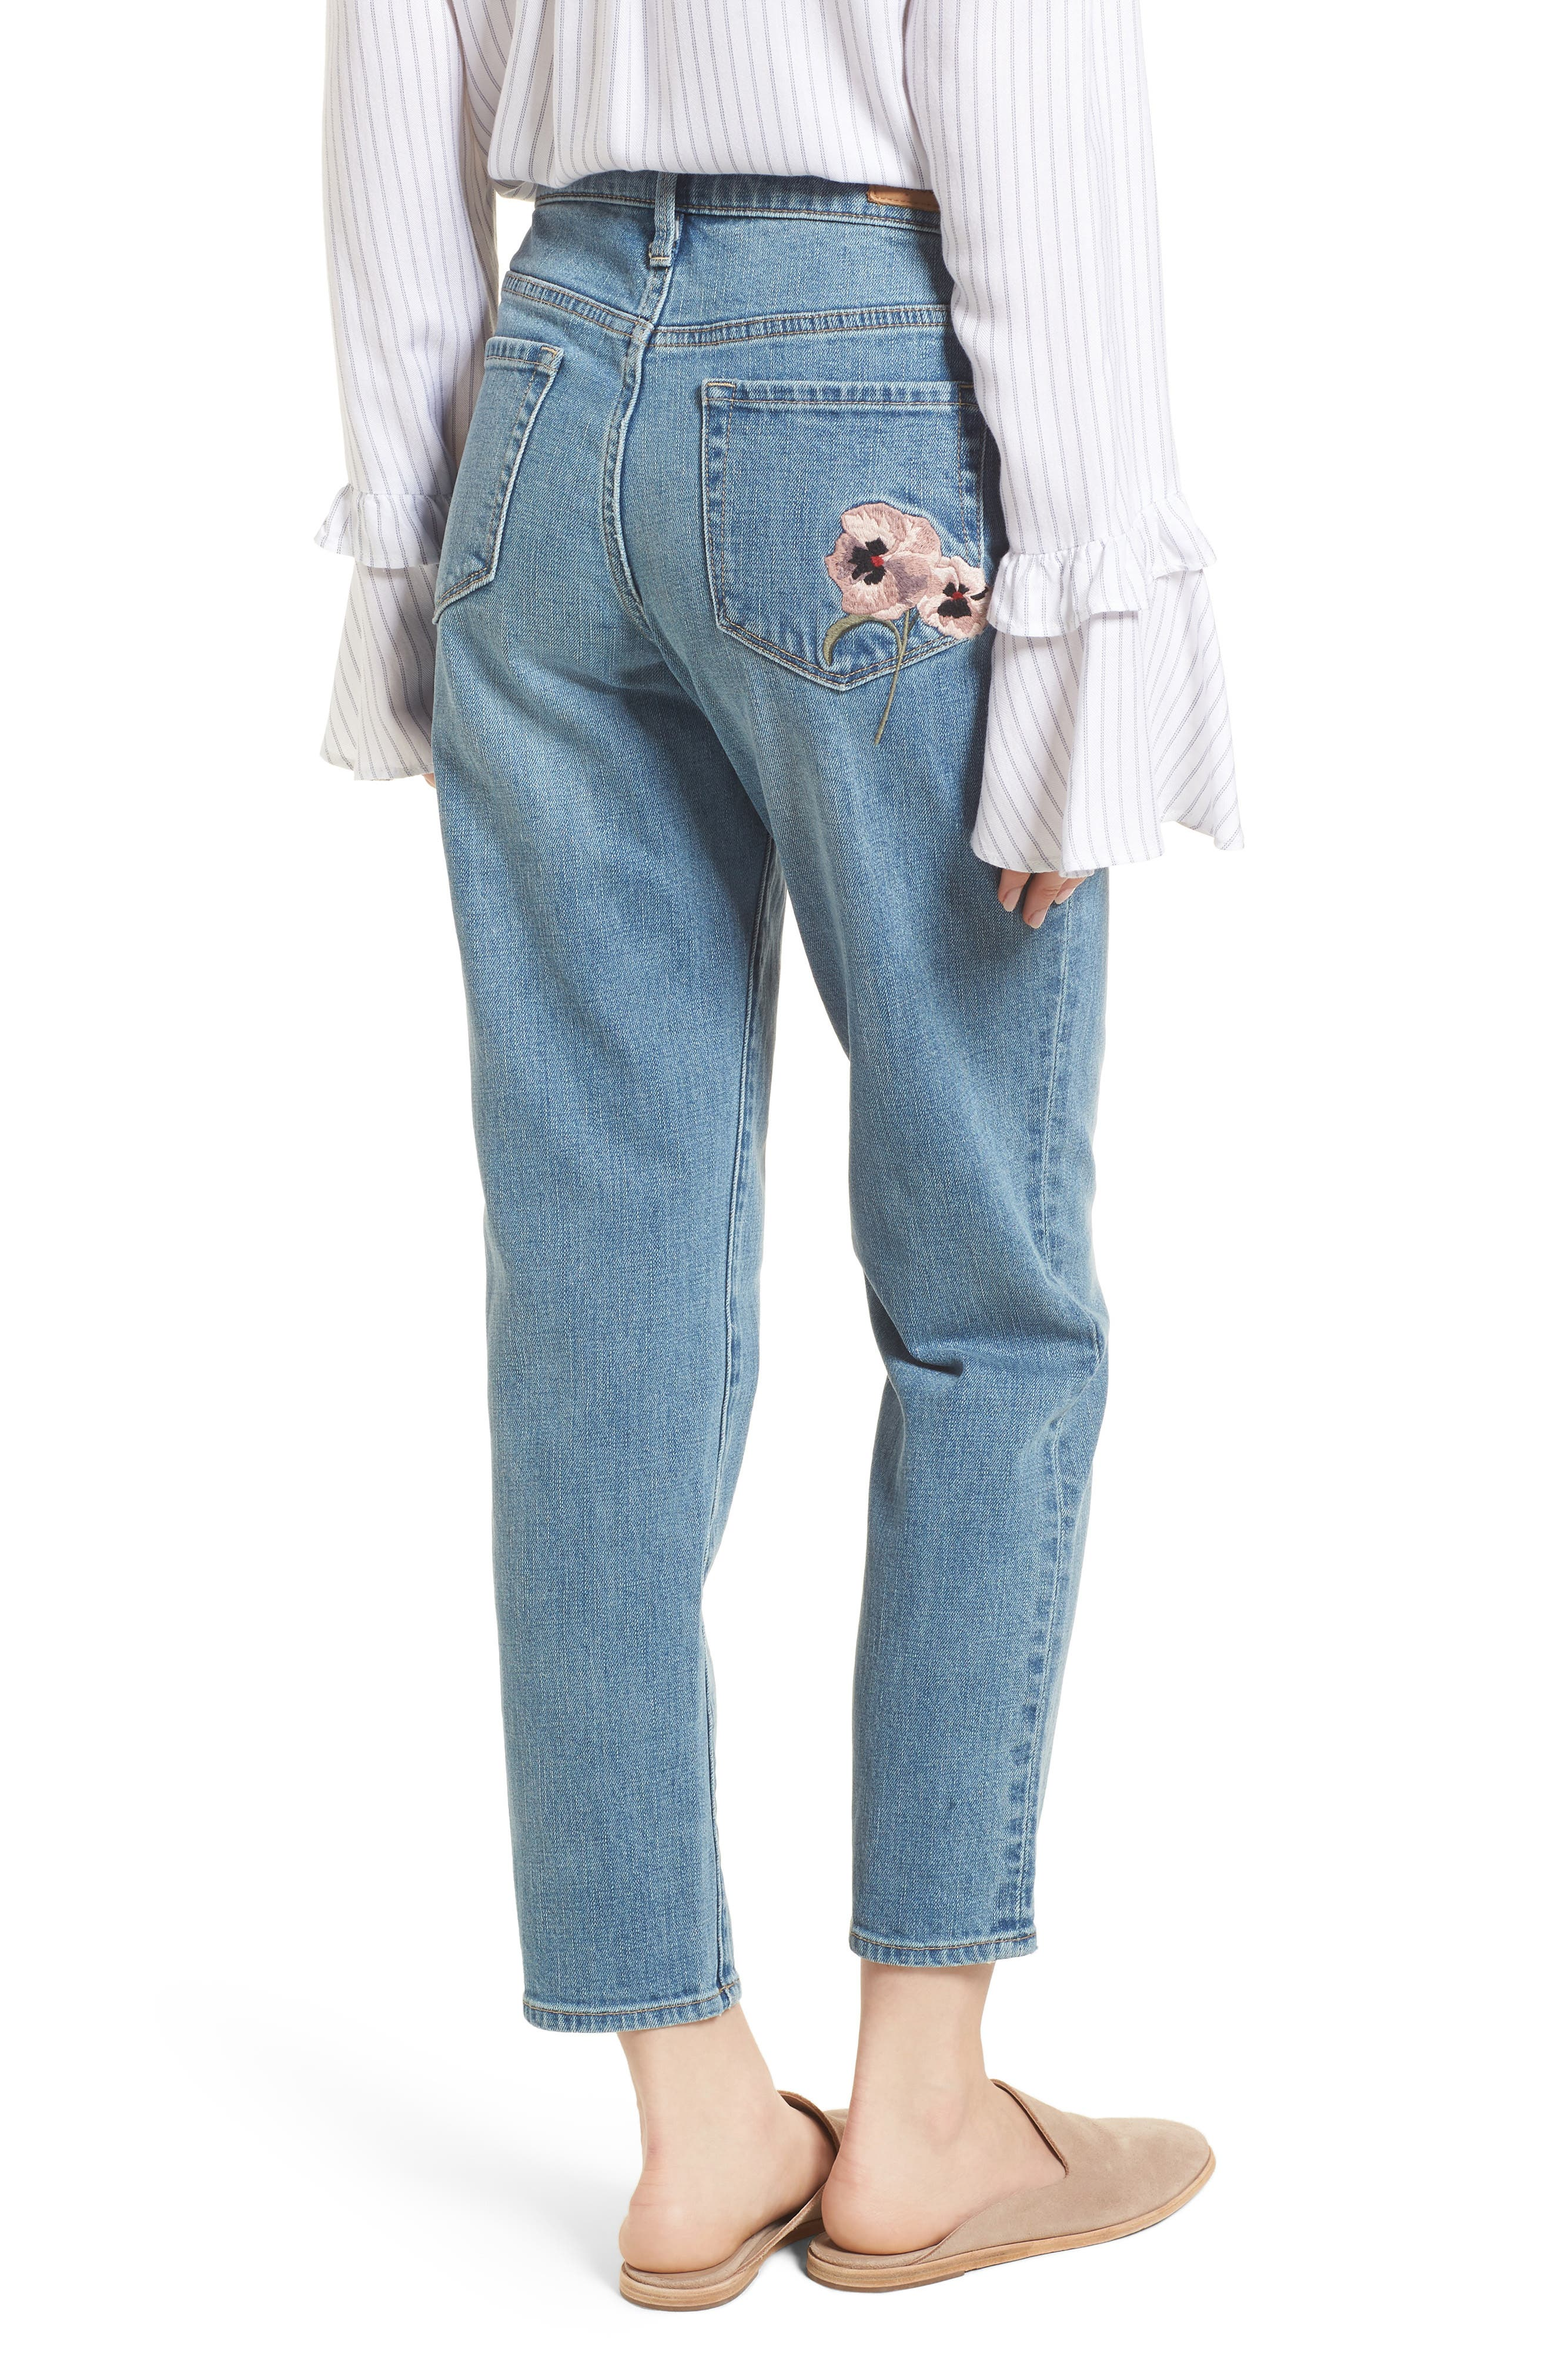 Pansy Embroidered Crop Boyfriend Jeans,                             Alternate thumbnail 2, color,                             Granite Light Embroidery